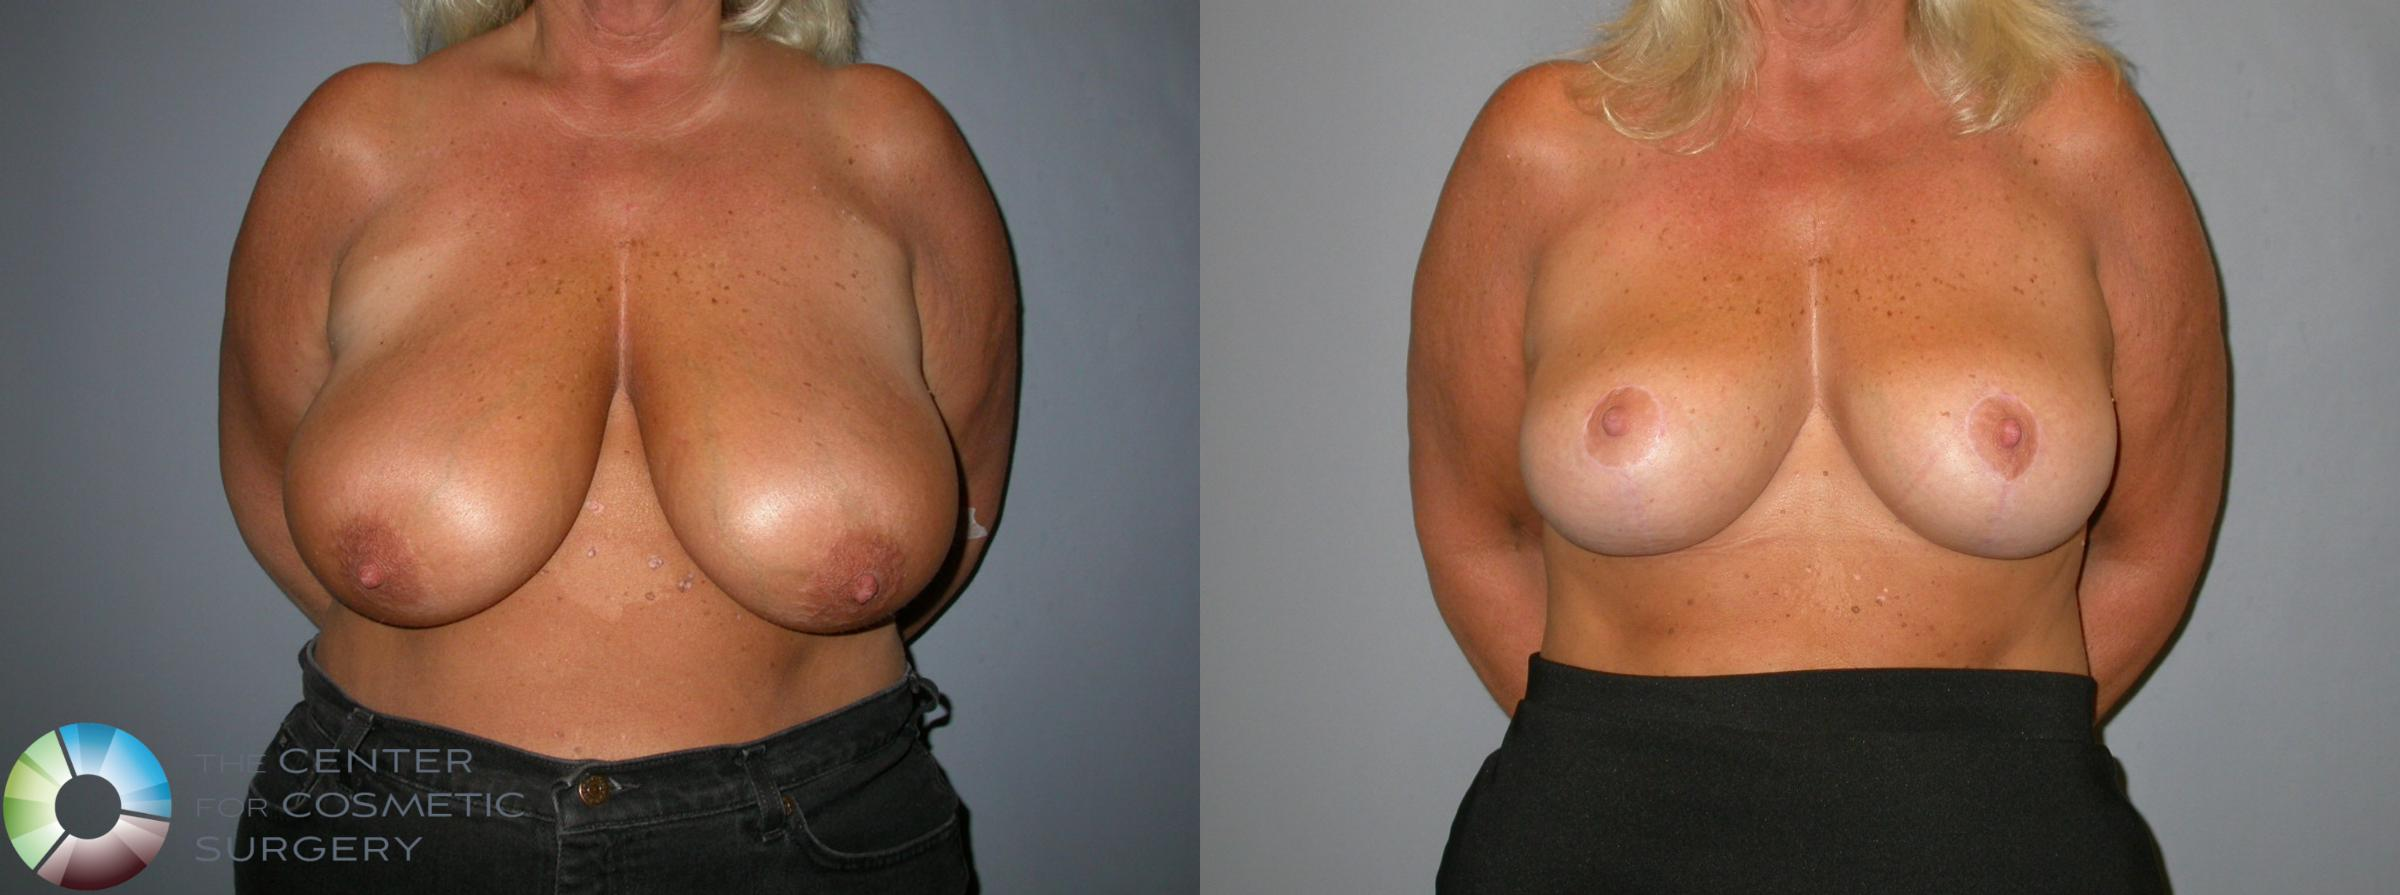 Breast Lift Case 107 Before & After View #1 | Golden, CO | The Center for Cosmetic Surgery